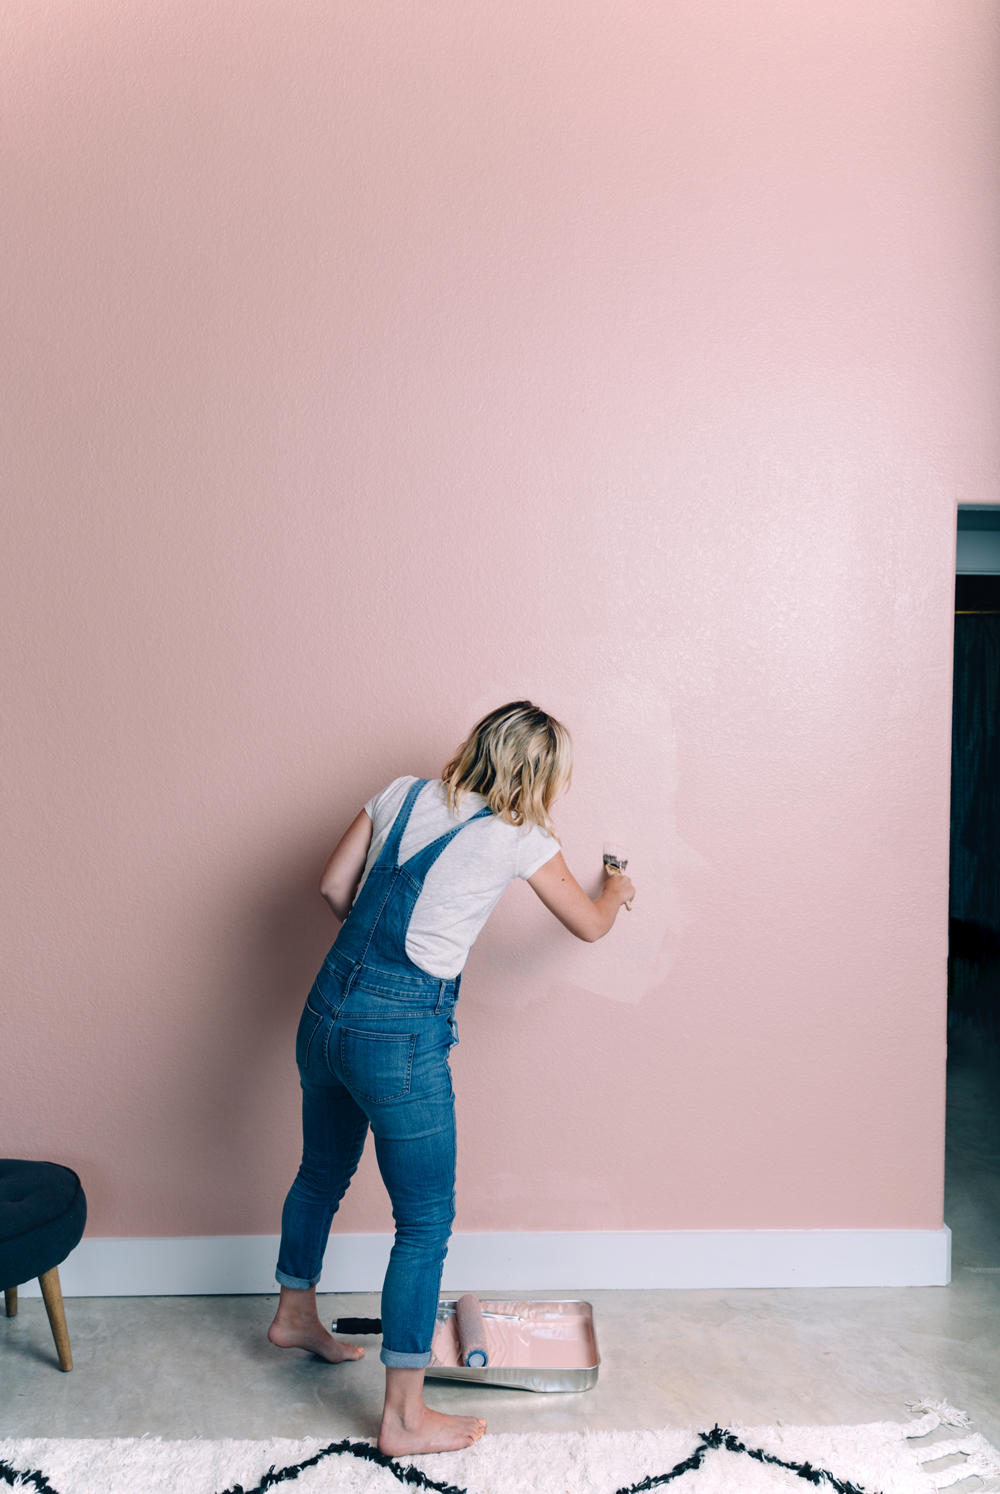 owning-your-own-style-sherwin-williams-hgtv-8